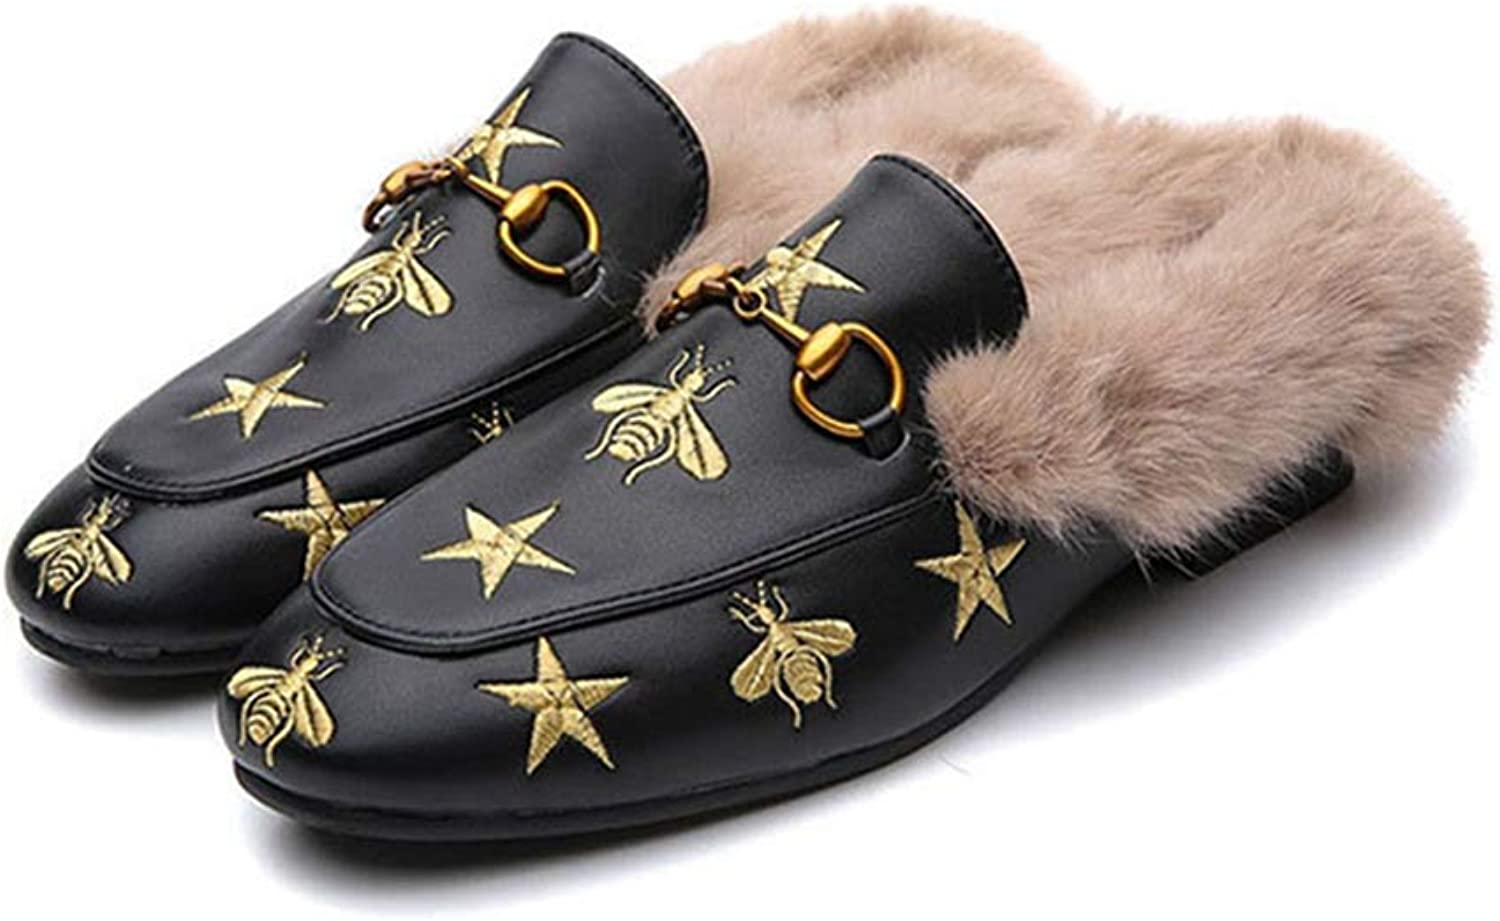 FAY WATERS Women's Fur Slippers Fashion Warm Casual Outdoor Flat Mules Slides